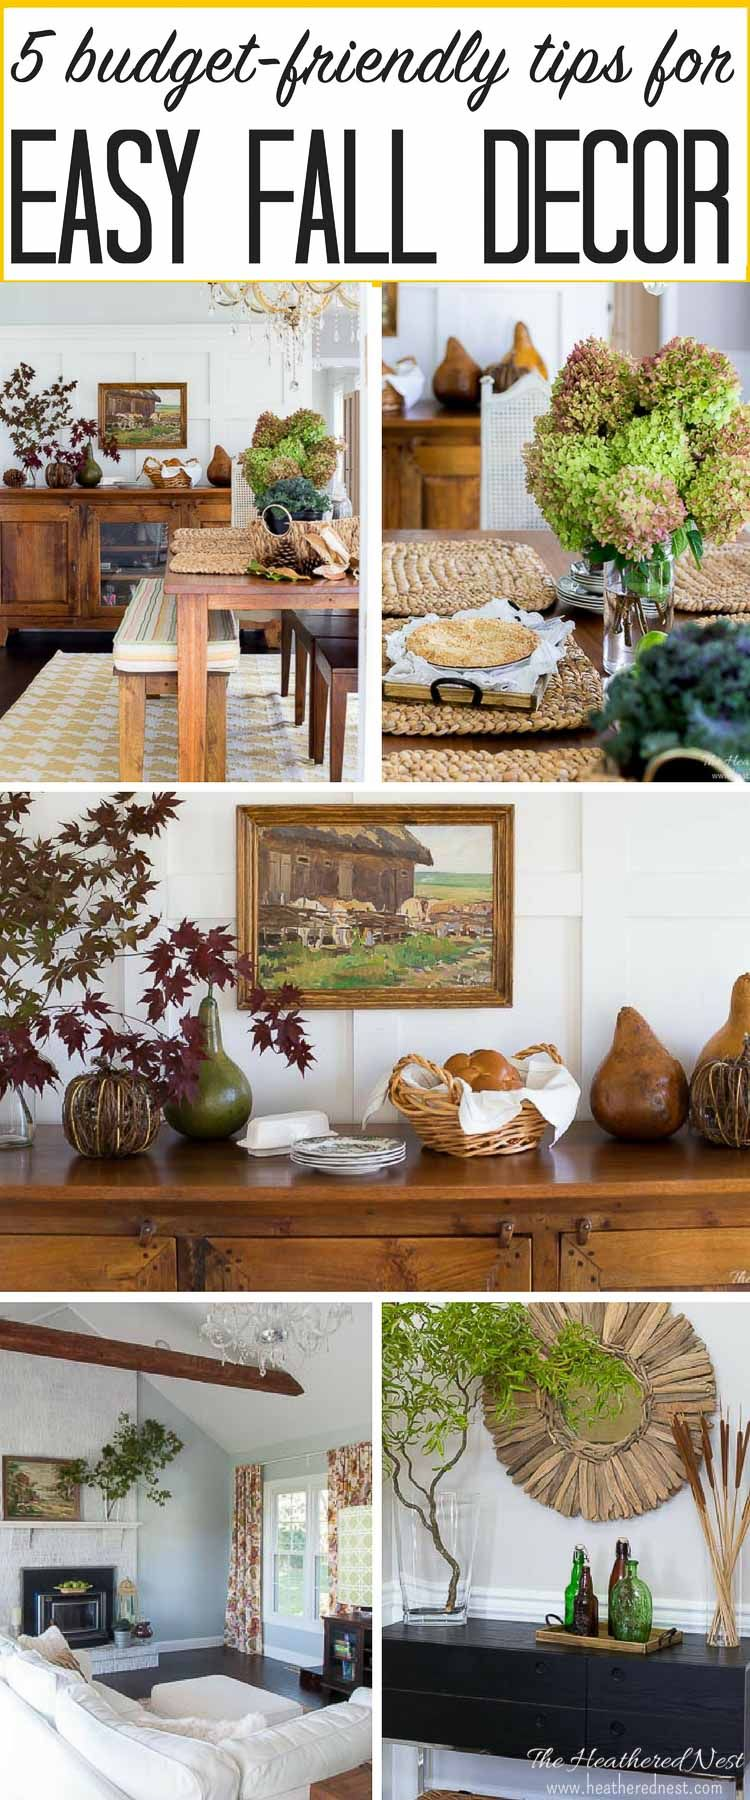 Fall decorating on a budget - 5 Inspired Tips To Easy Budget Friendly Fall Home Decor